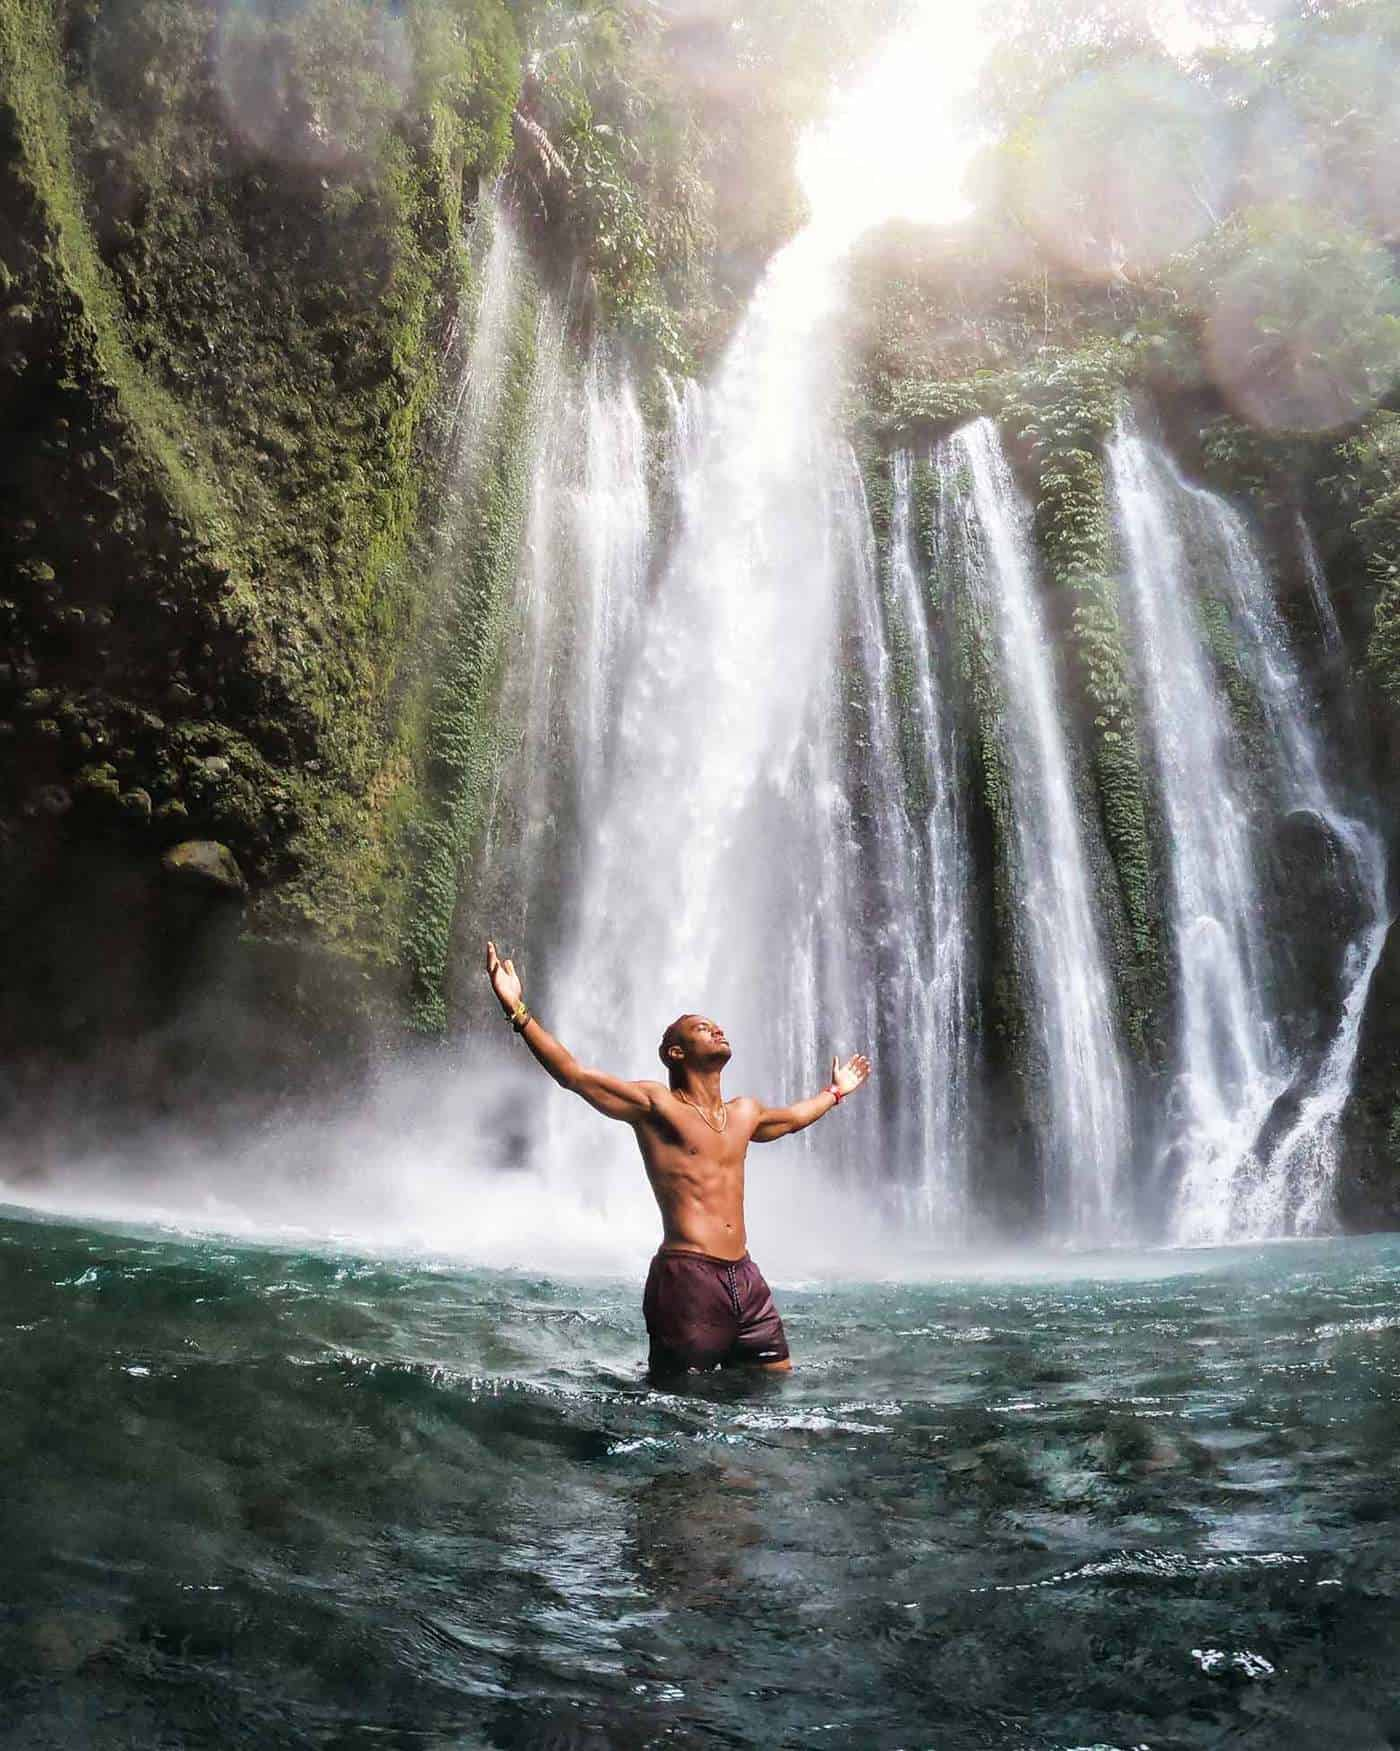 tiu kelep waterfall _ 3 weeks in bali itinerary